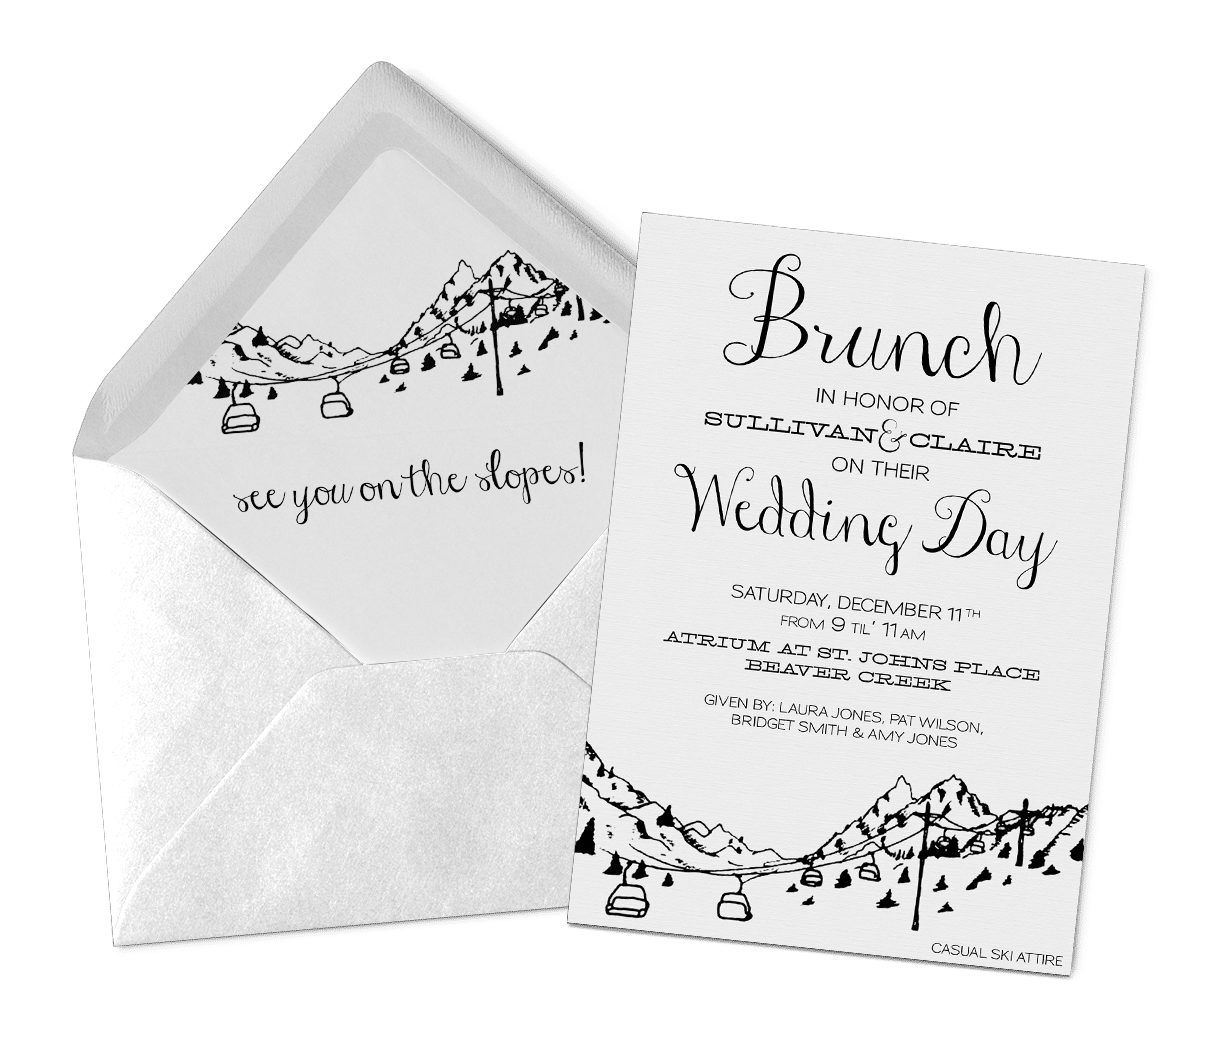 Wedding Day Brunch Invitations | Invitation Design